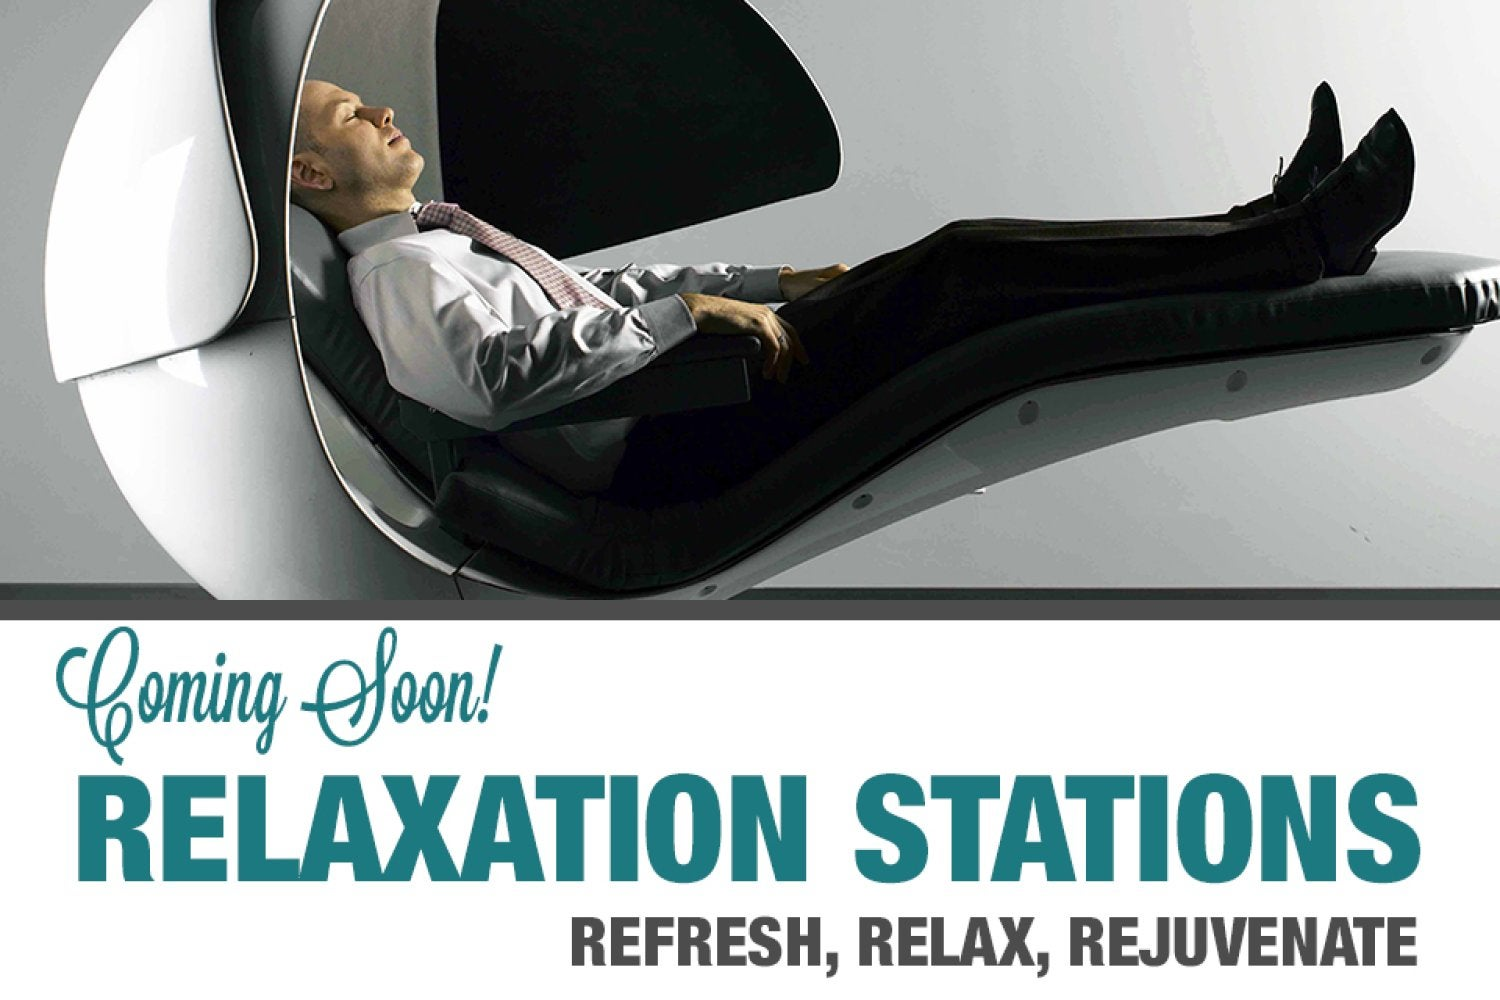 realxation stations coming soon to the rec